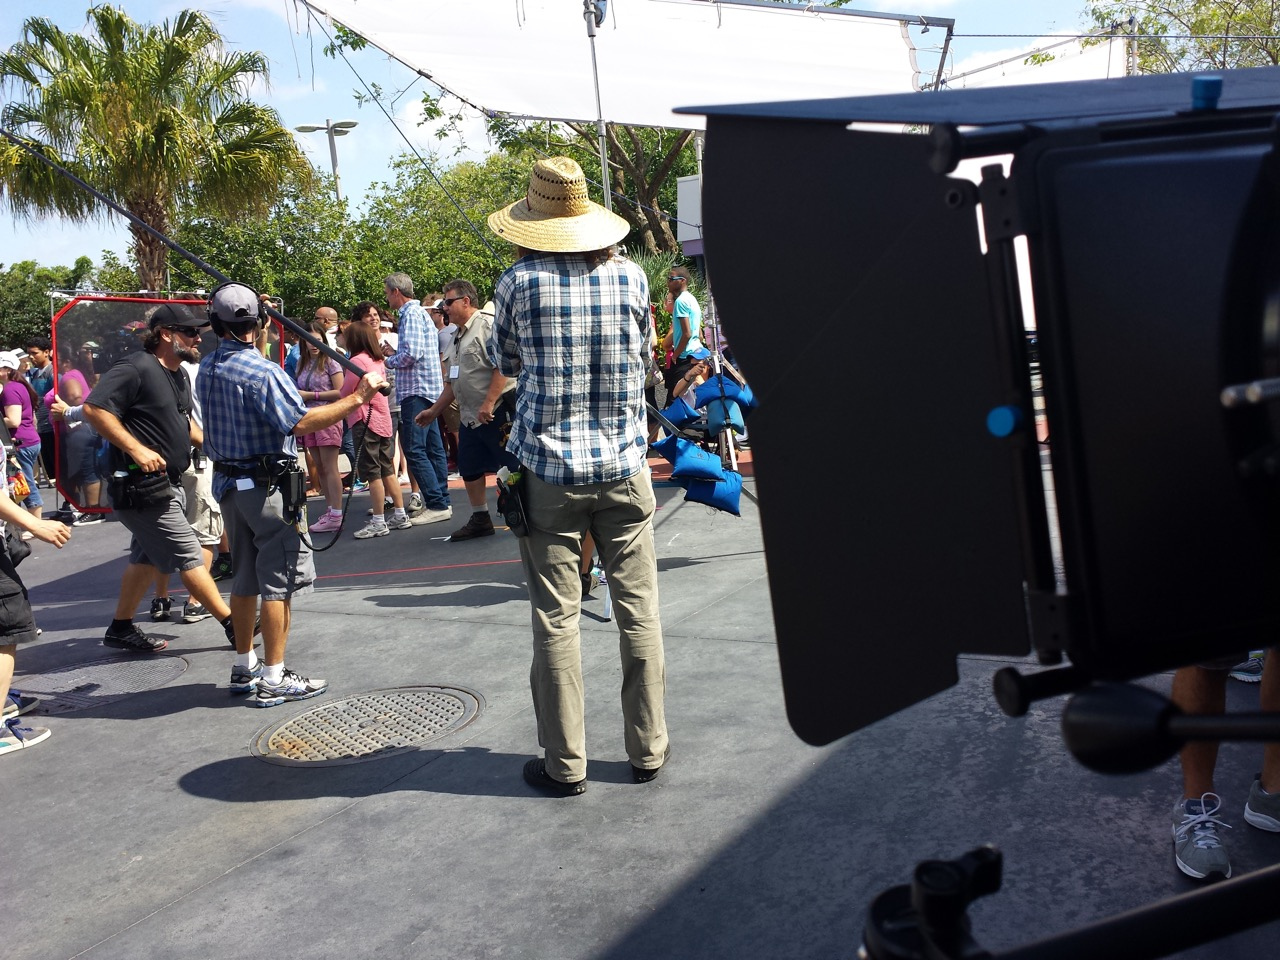 FILMING TELEVISION SHOW